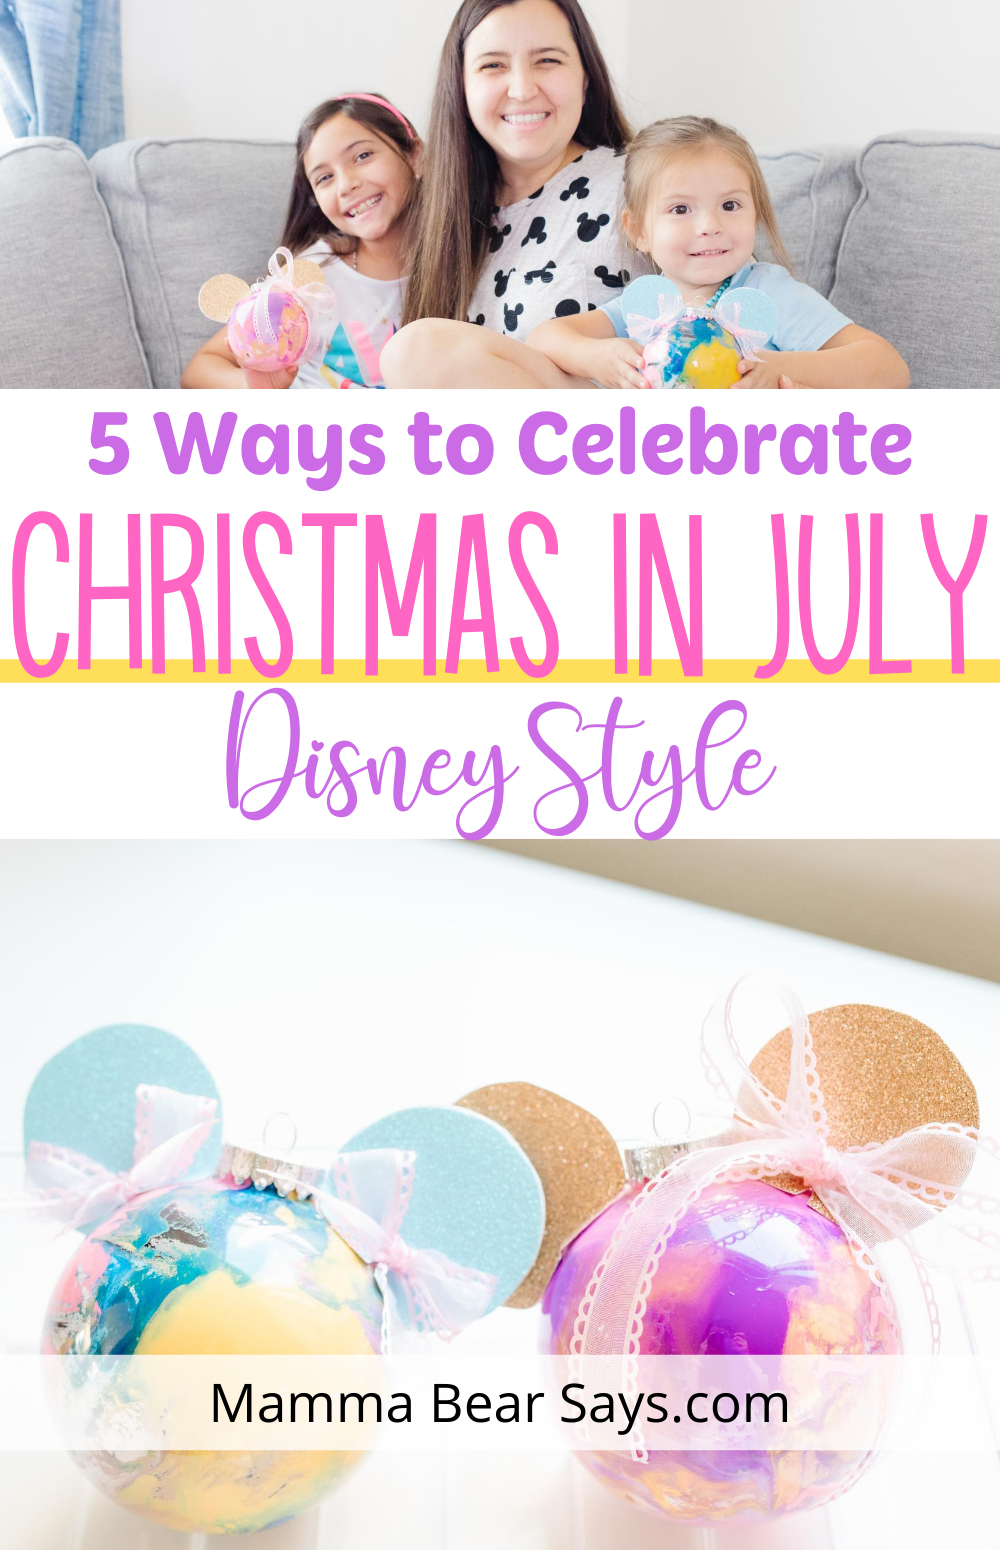 Christmas in July is here! We were so excited to take part in some super fun Disney themed Christmas in July fun this year! #ChristmasinJuly #xmasinjuly #xmas #Christmas #july #holidayseason #christmastree #christmasornaments #disney #disneymom #disneyfamily